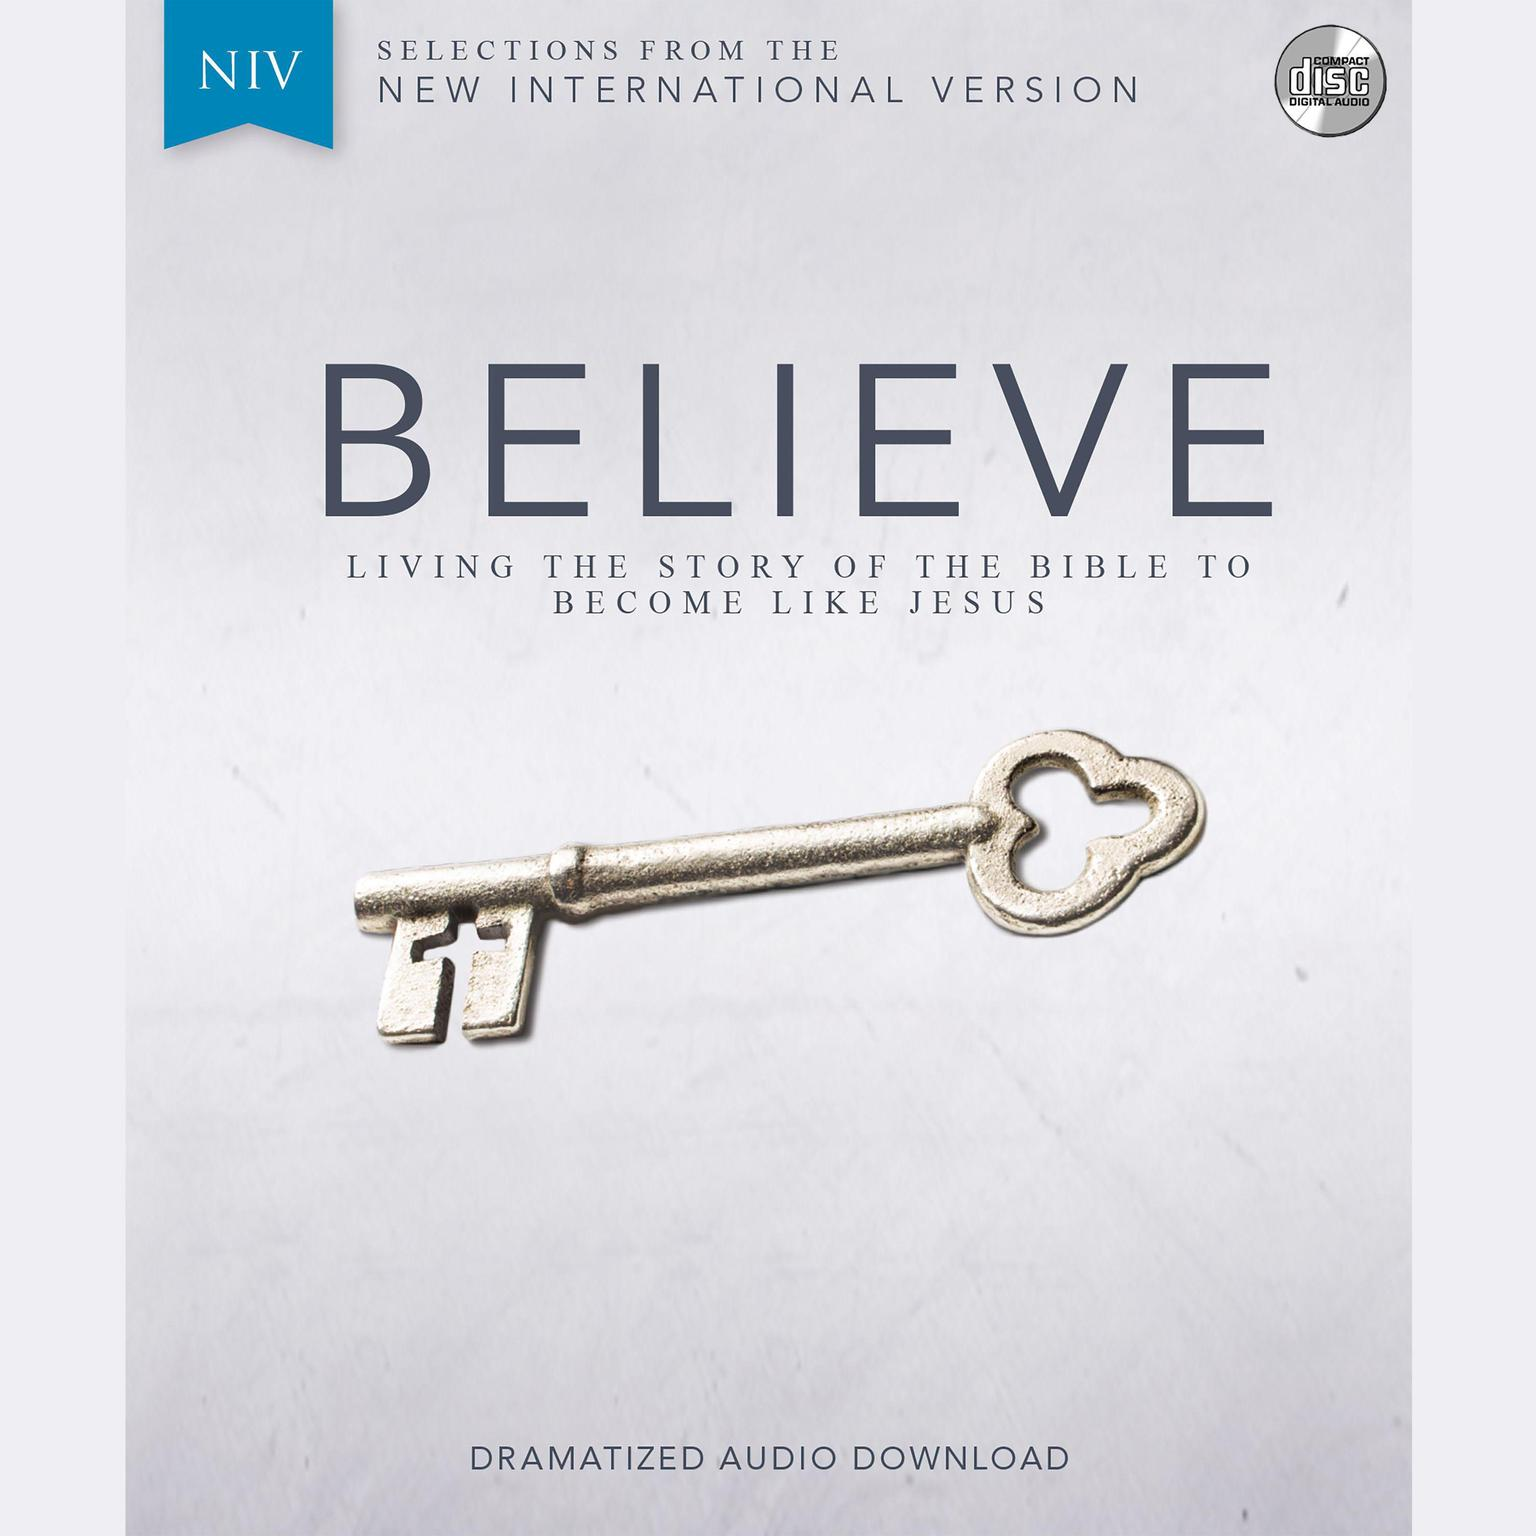 Printable Believe Audio Bible Dramatized - New International Version, NIV: Complete Bible: Living the Story of the Bible to Become LIke Jesus Audiobook Cover Art